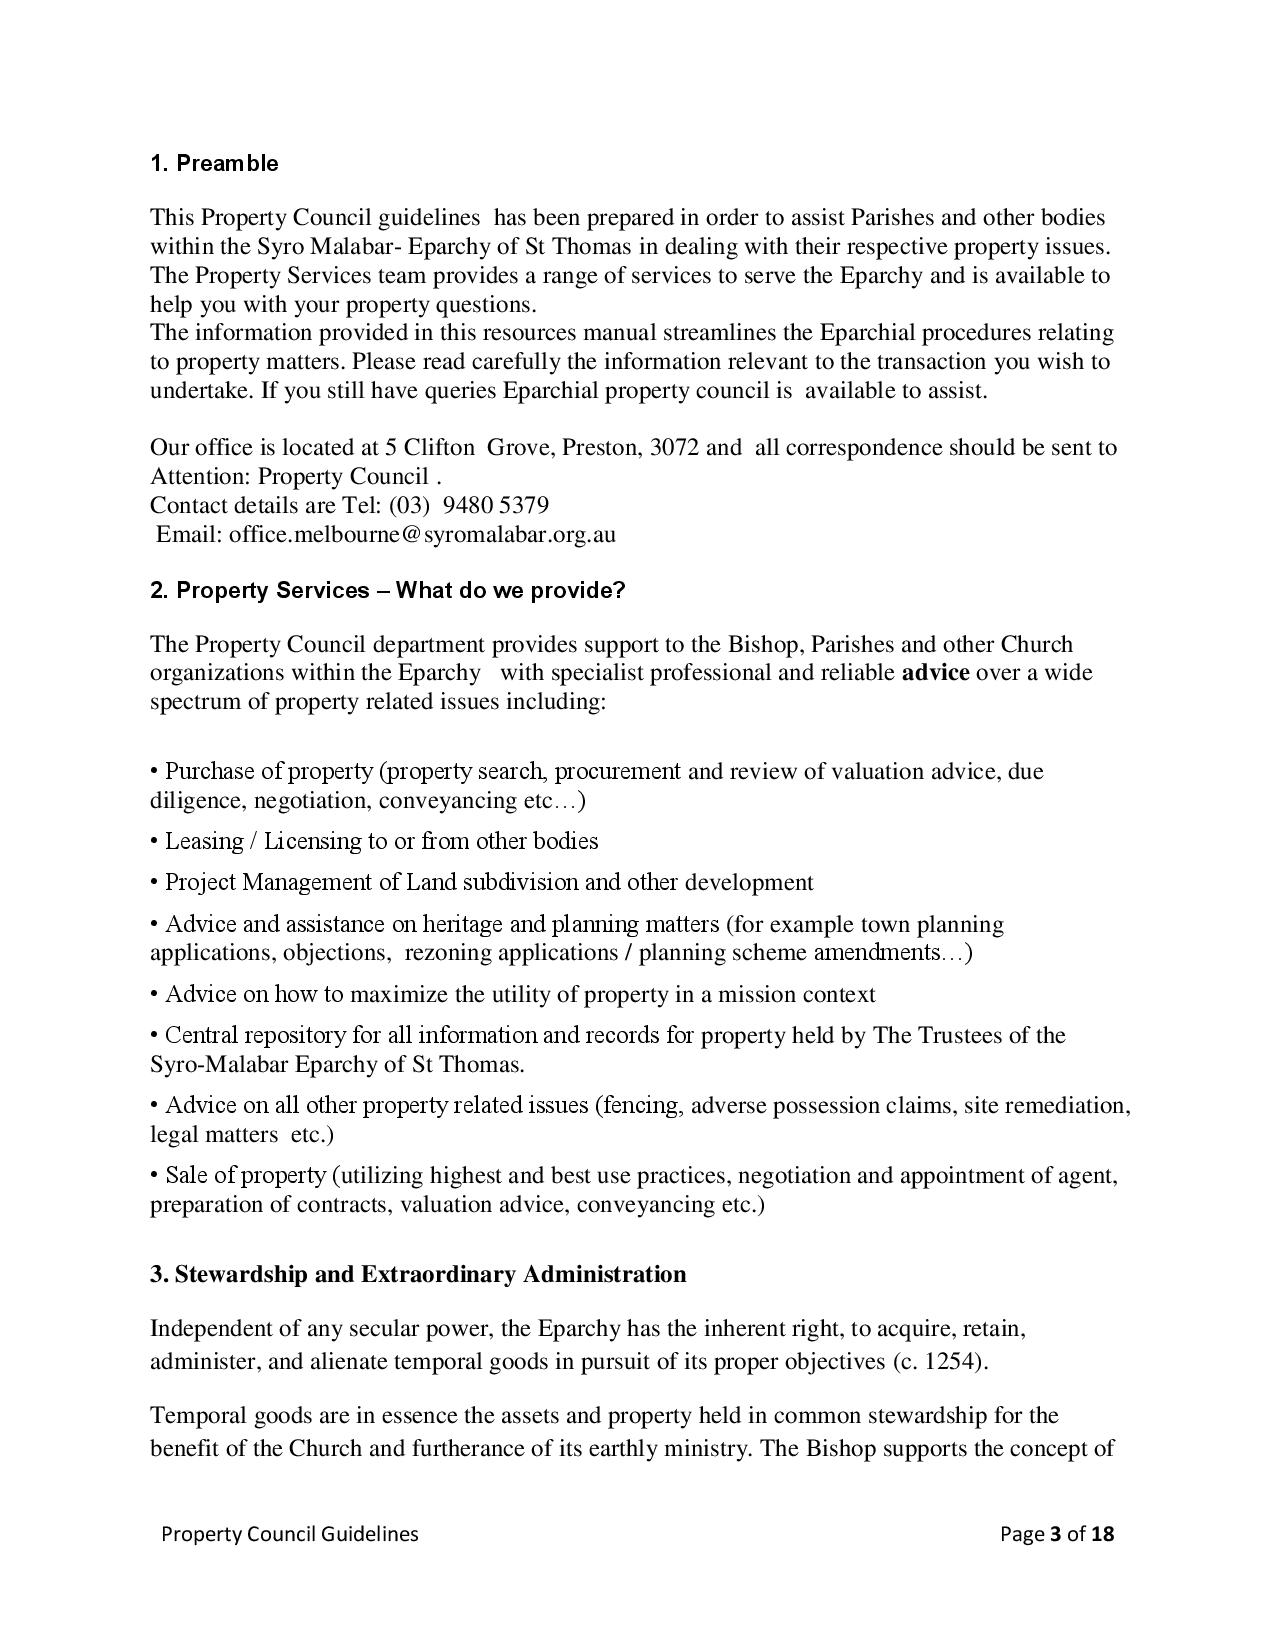 property-council-guidlines-v2-4-page-003